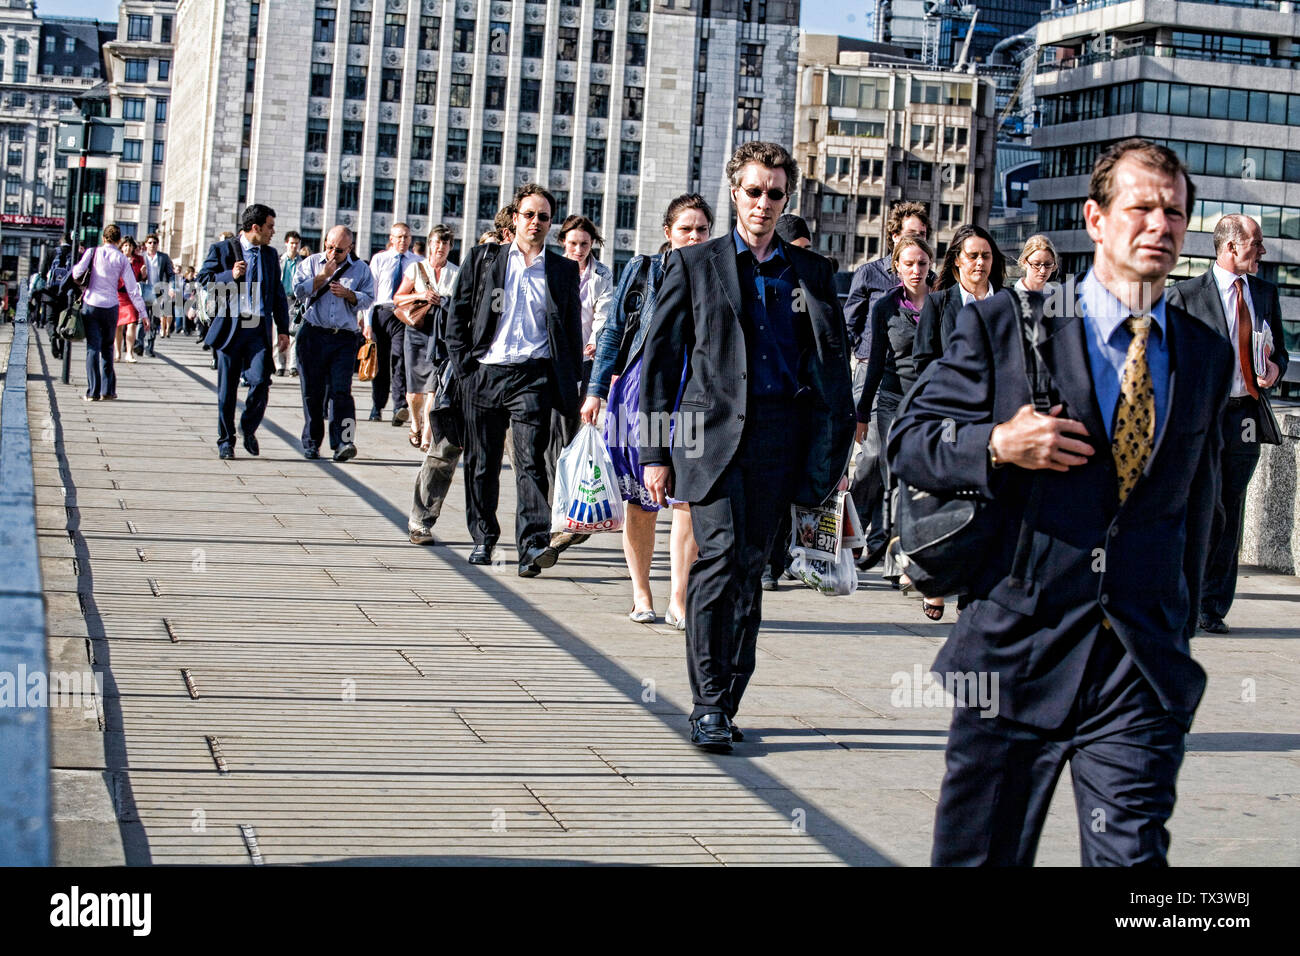 People crossing London bridge at rush hours London England Britain UK - Stock Image